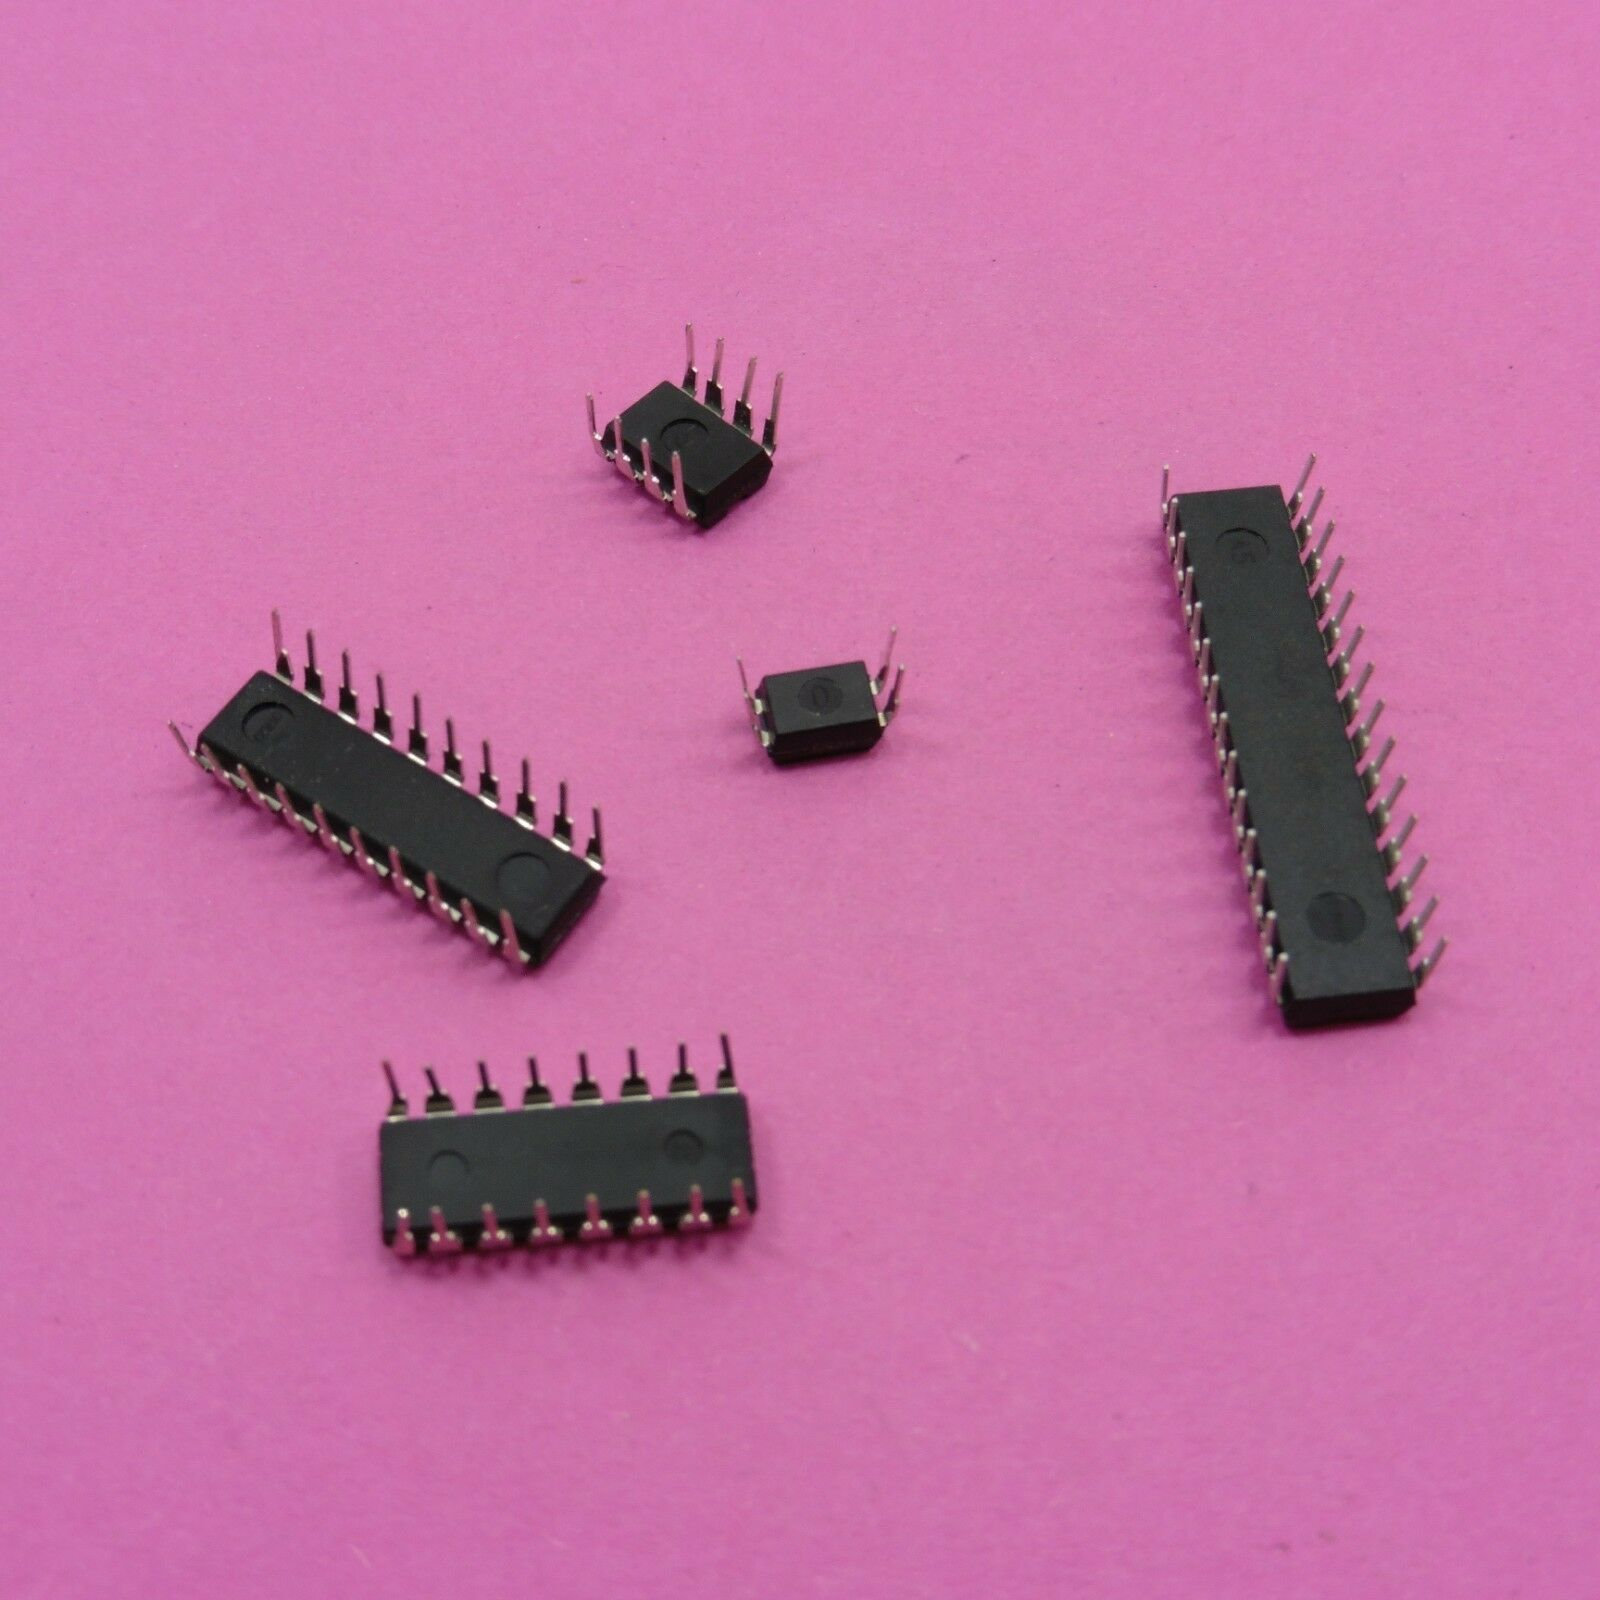 Ic Chips 4 8 14 16 20 Pin 2 Wire Serial Integrated Circuits 1 Of 1free Shipping